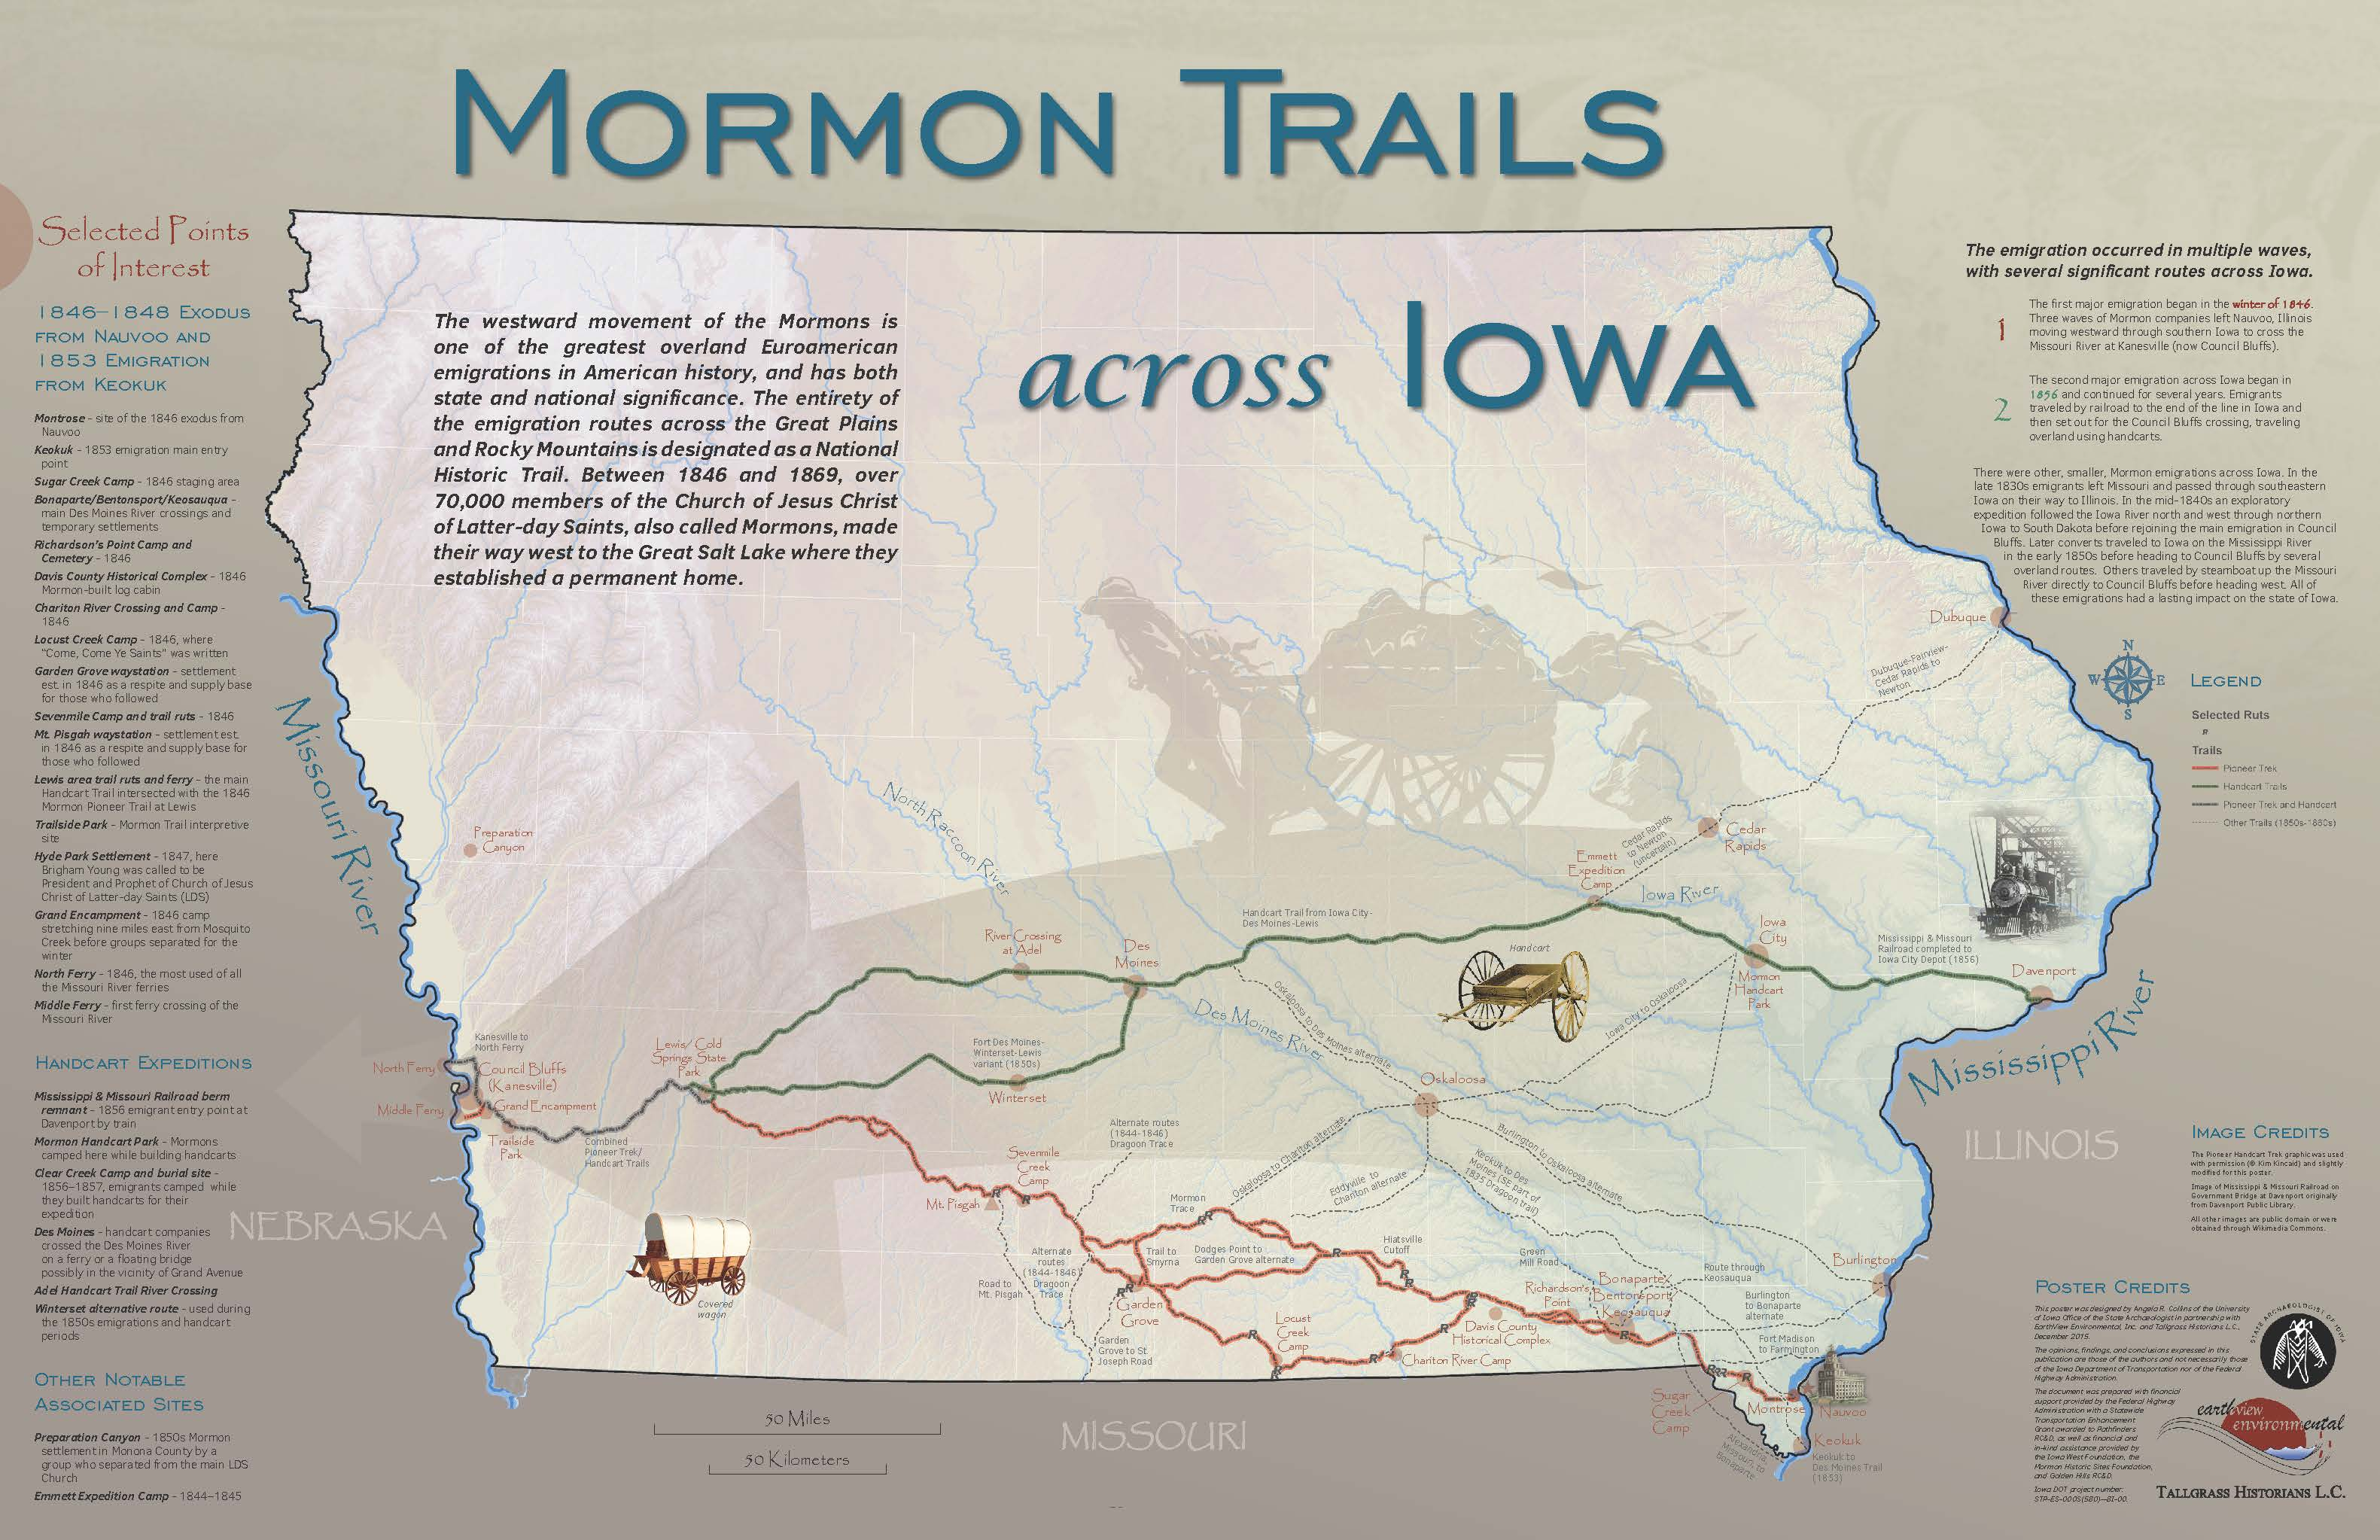 Mormon Trail Poster for Distribution